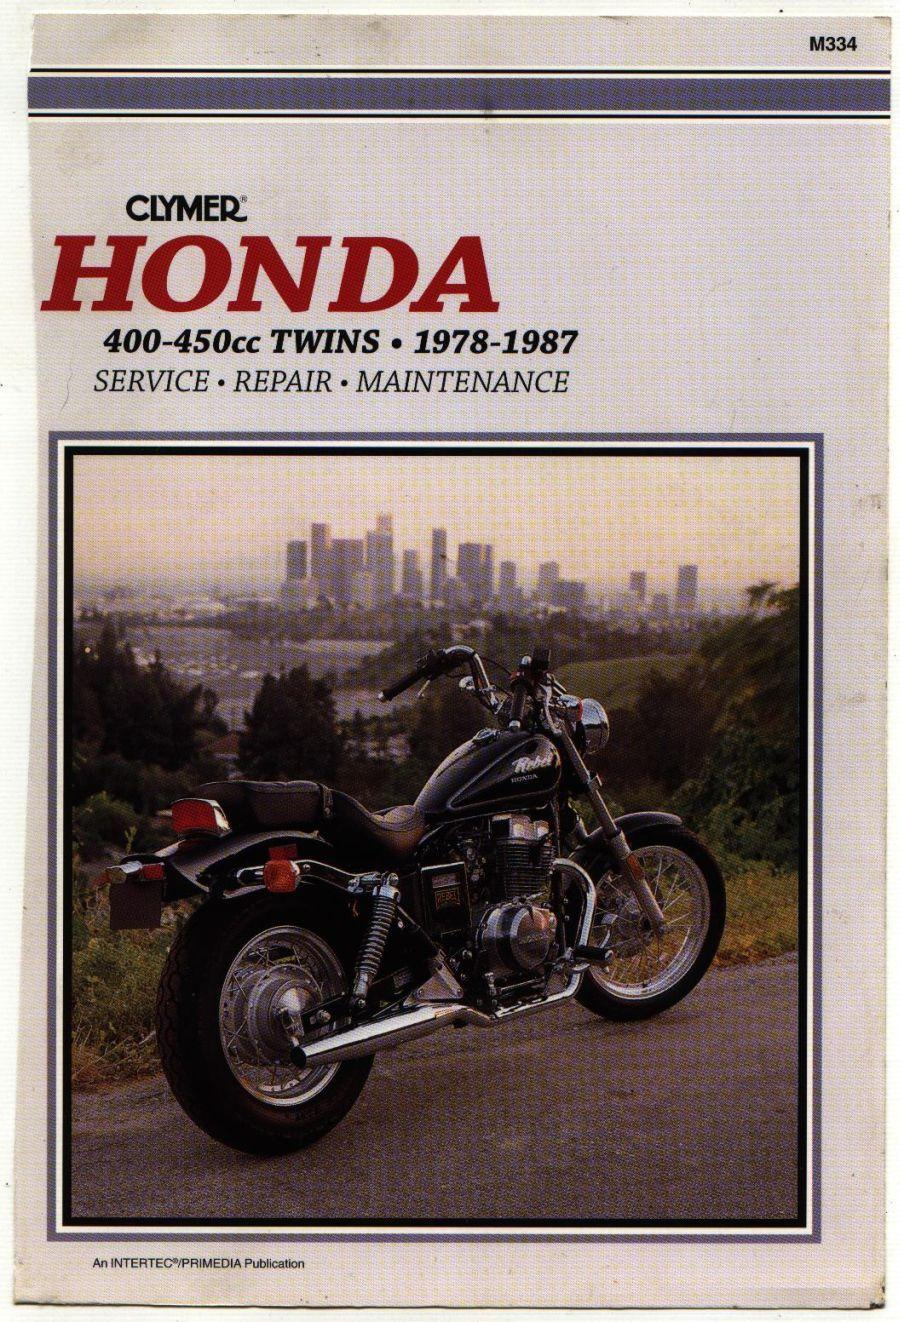 Clymer Honda 400&450 (1978-1987) Twins Workshop Manual